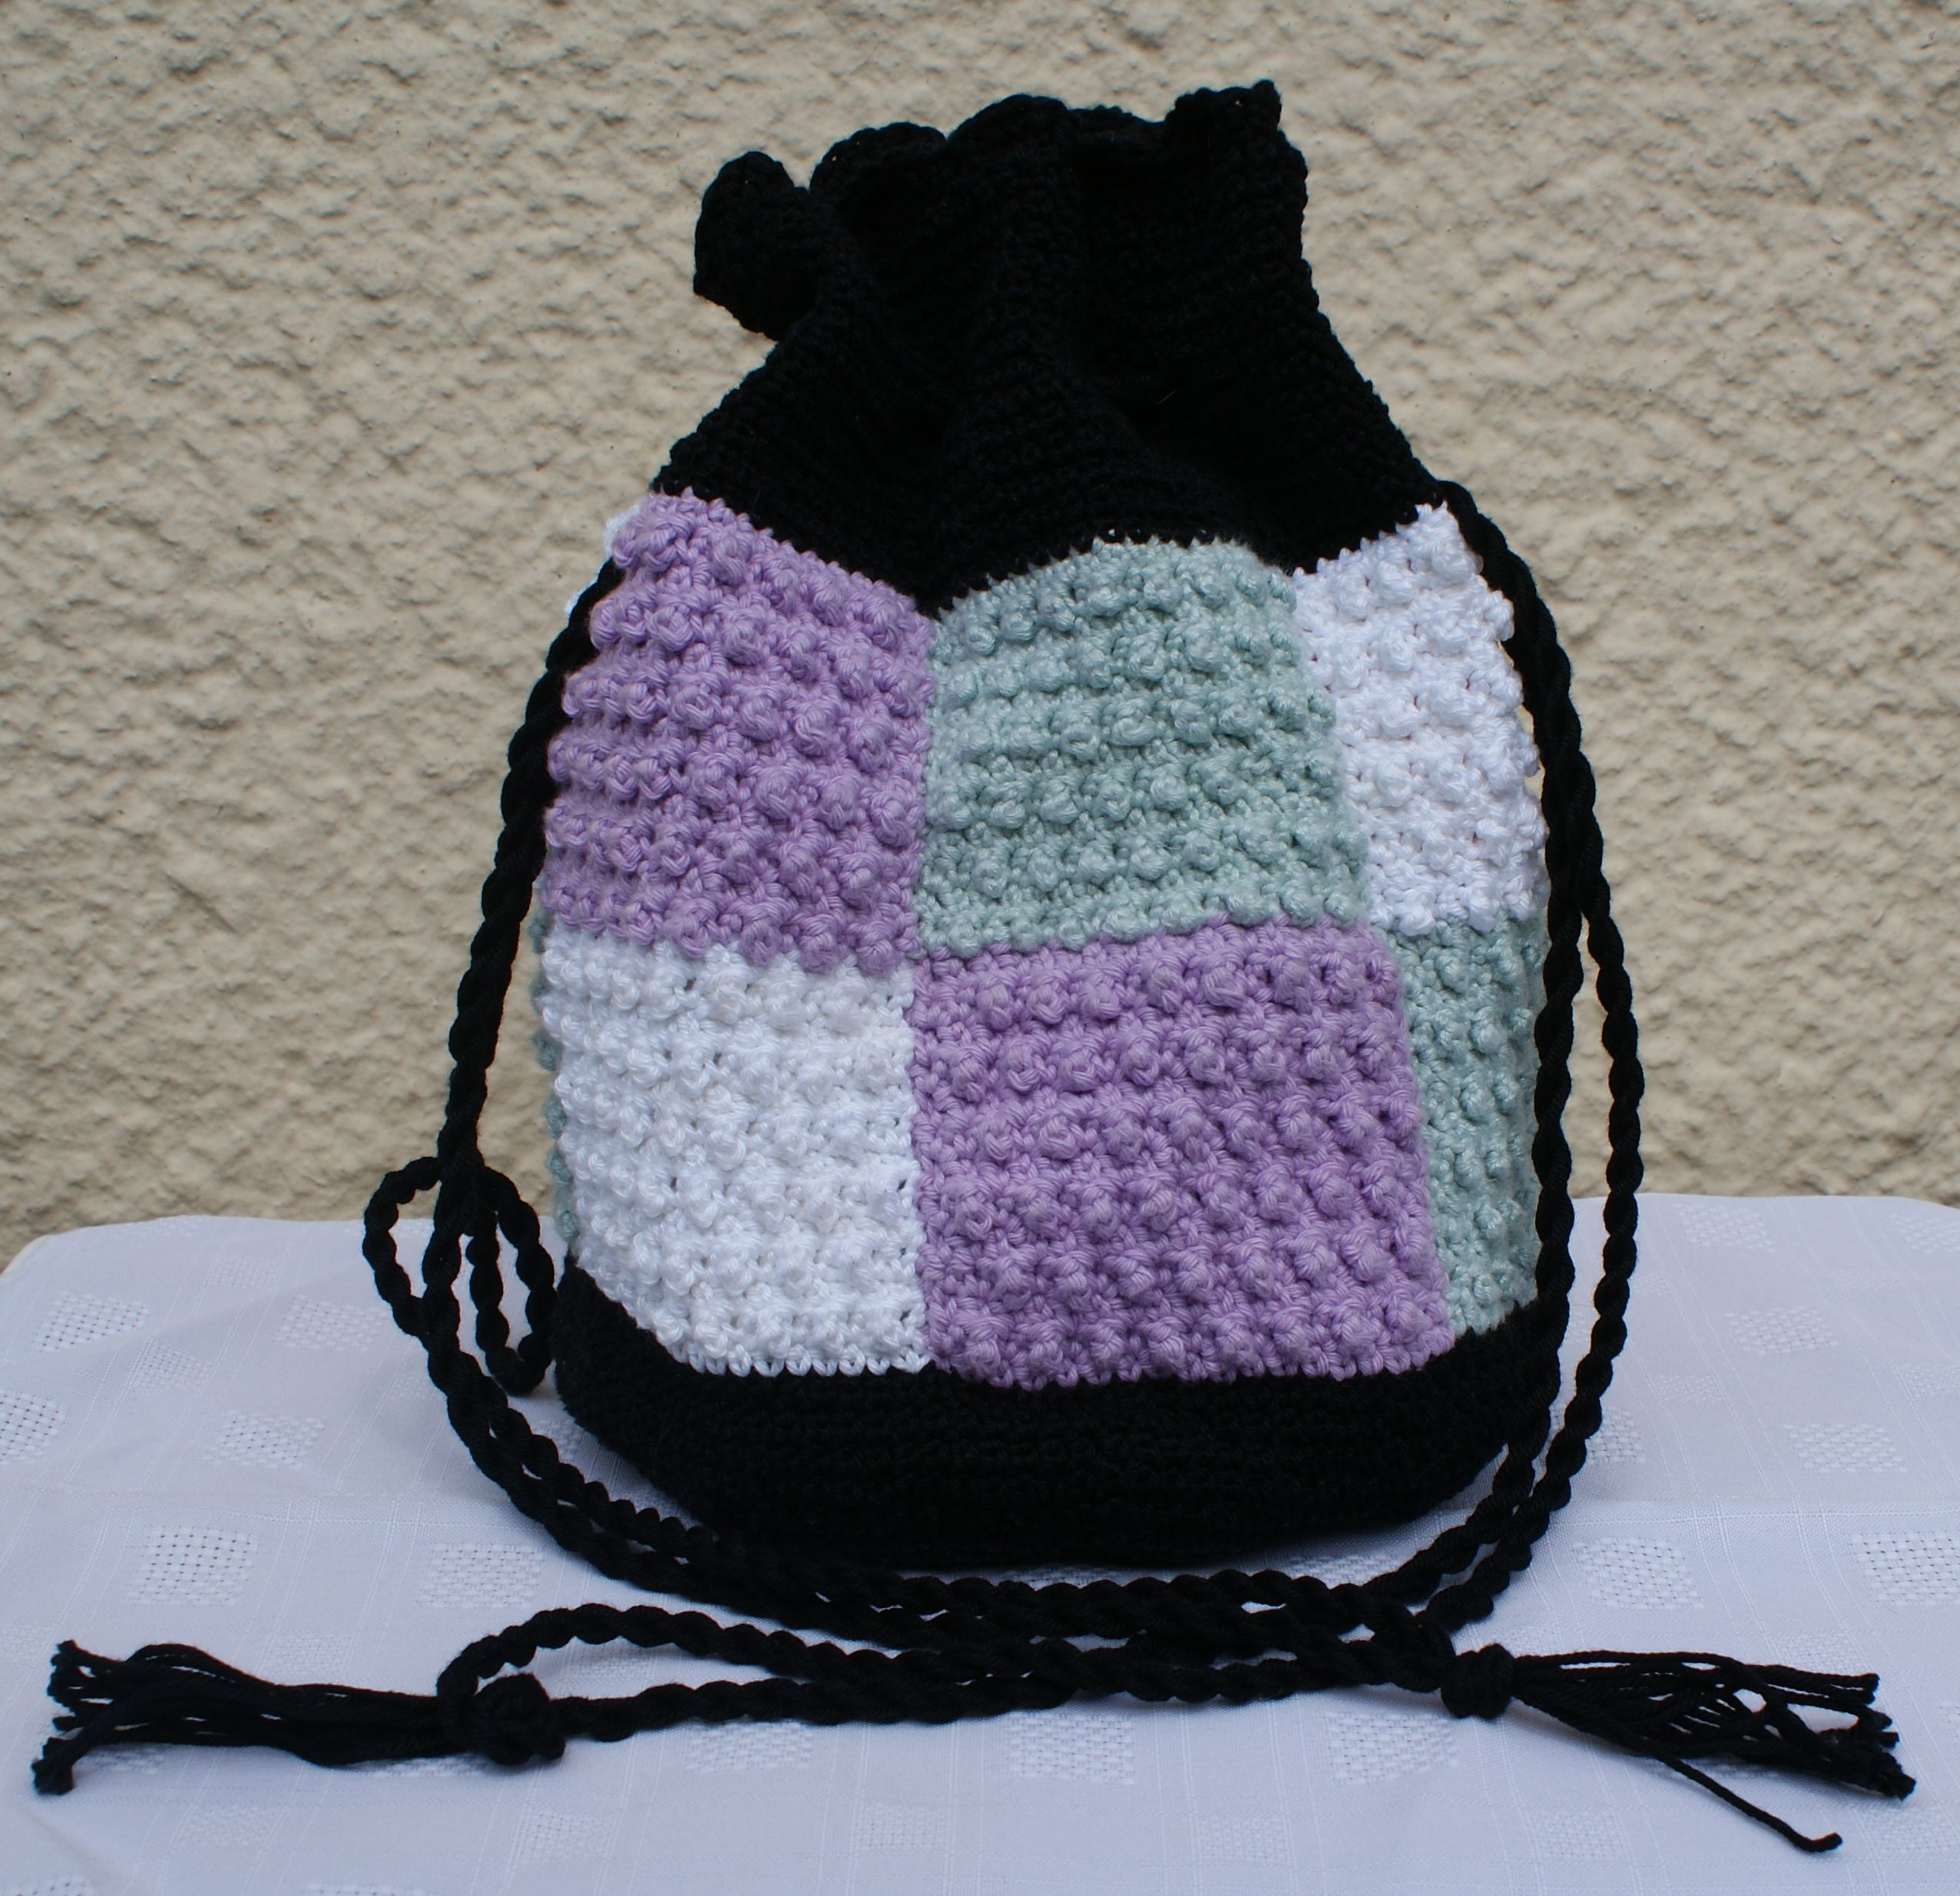 Crochet Drawstring Bag : Crochet drawstring bag Crochet bags Pinterest